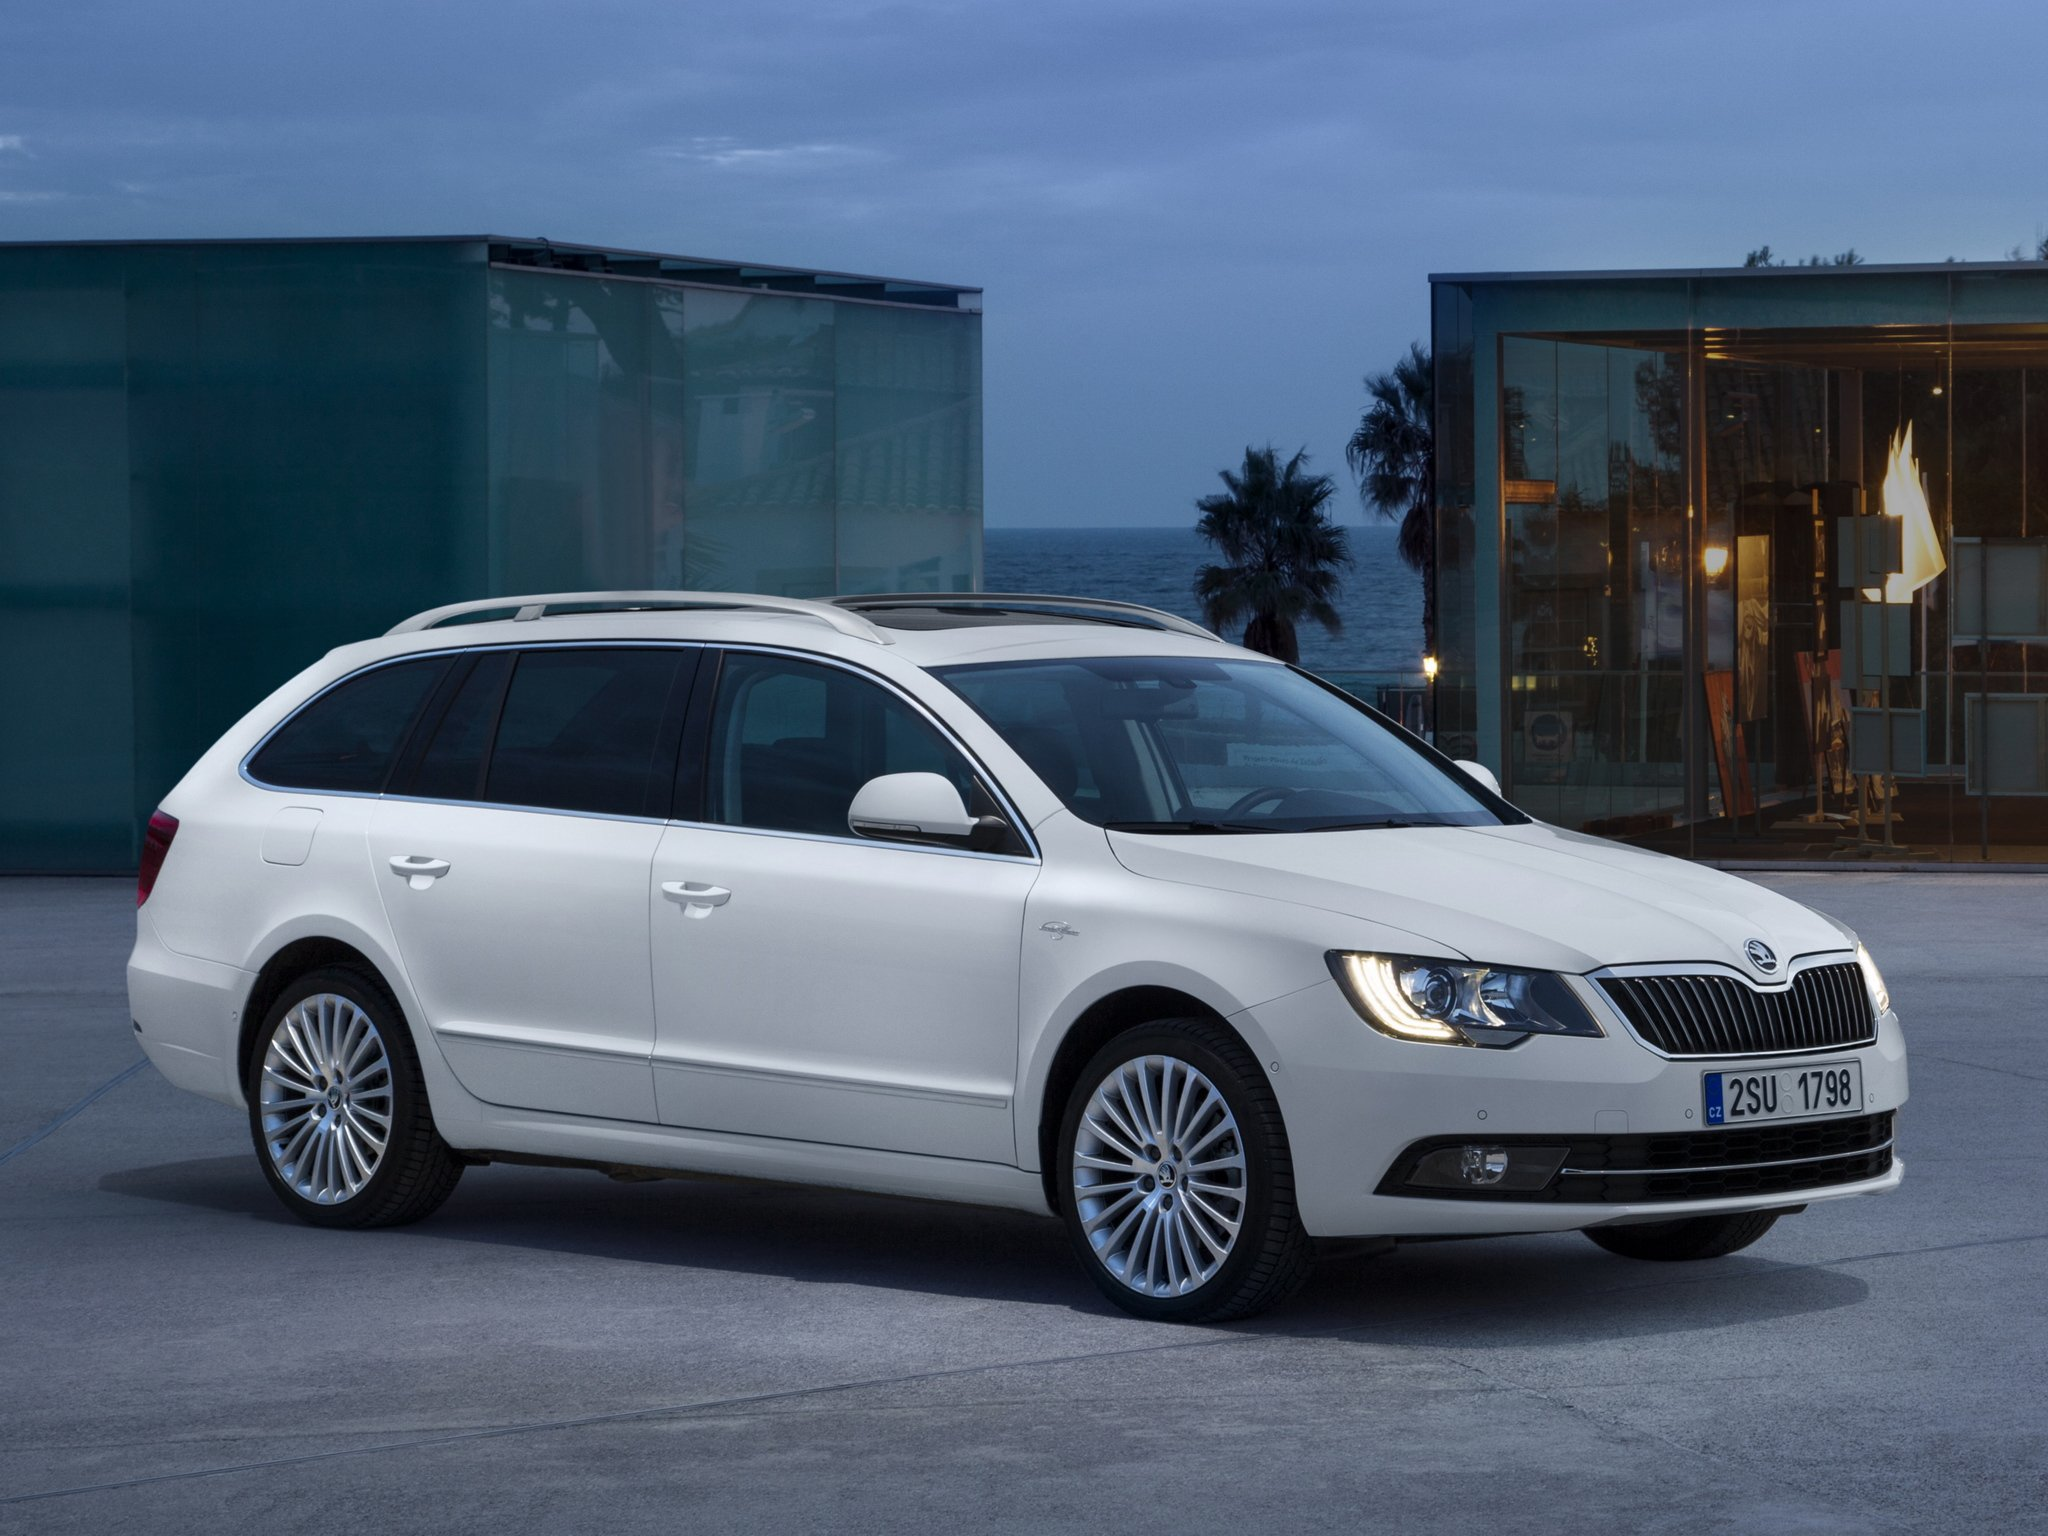 2014 skoda superb combi laurin klement stationwagon g wallpaper 2048x1536 298593 wallpaperup. Black Bedroom Furniture Sets. Home Design Ideas